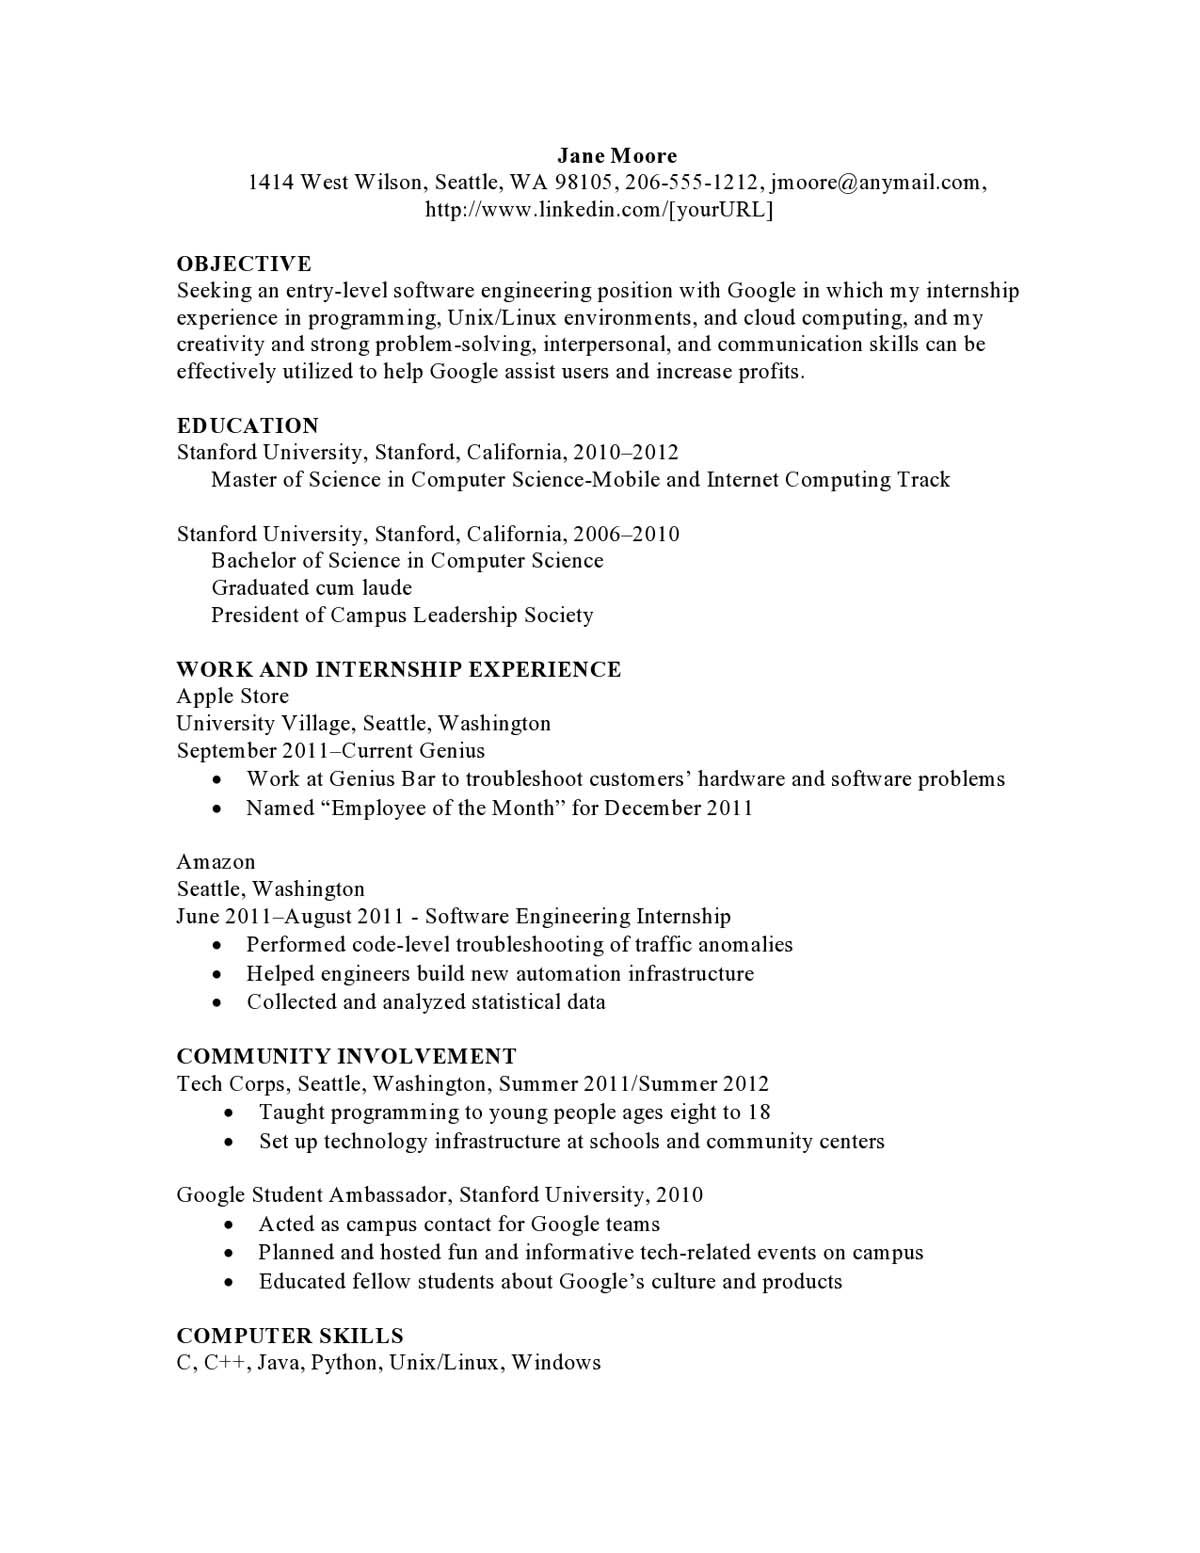 Apple Store Resume Glamorous Computer Software Entry Level Combination Resume  Get Ahead .